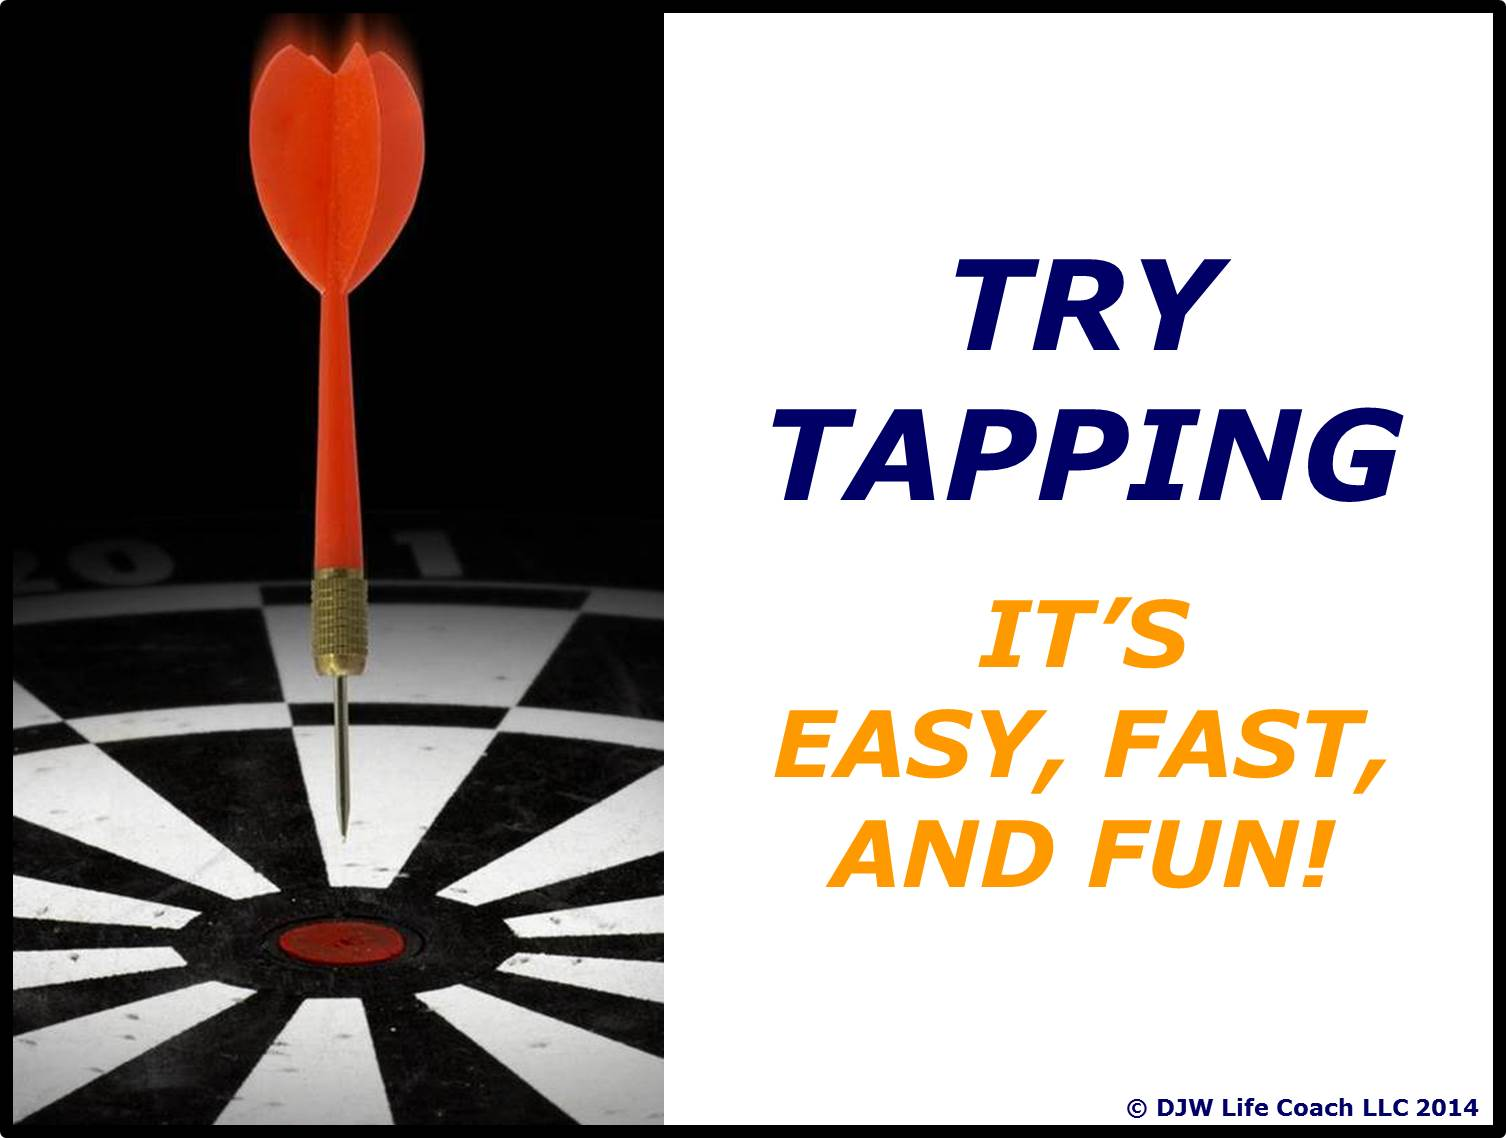 The Wait is Over: Time to Register and Try Tapping